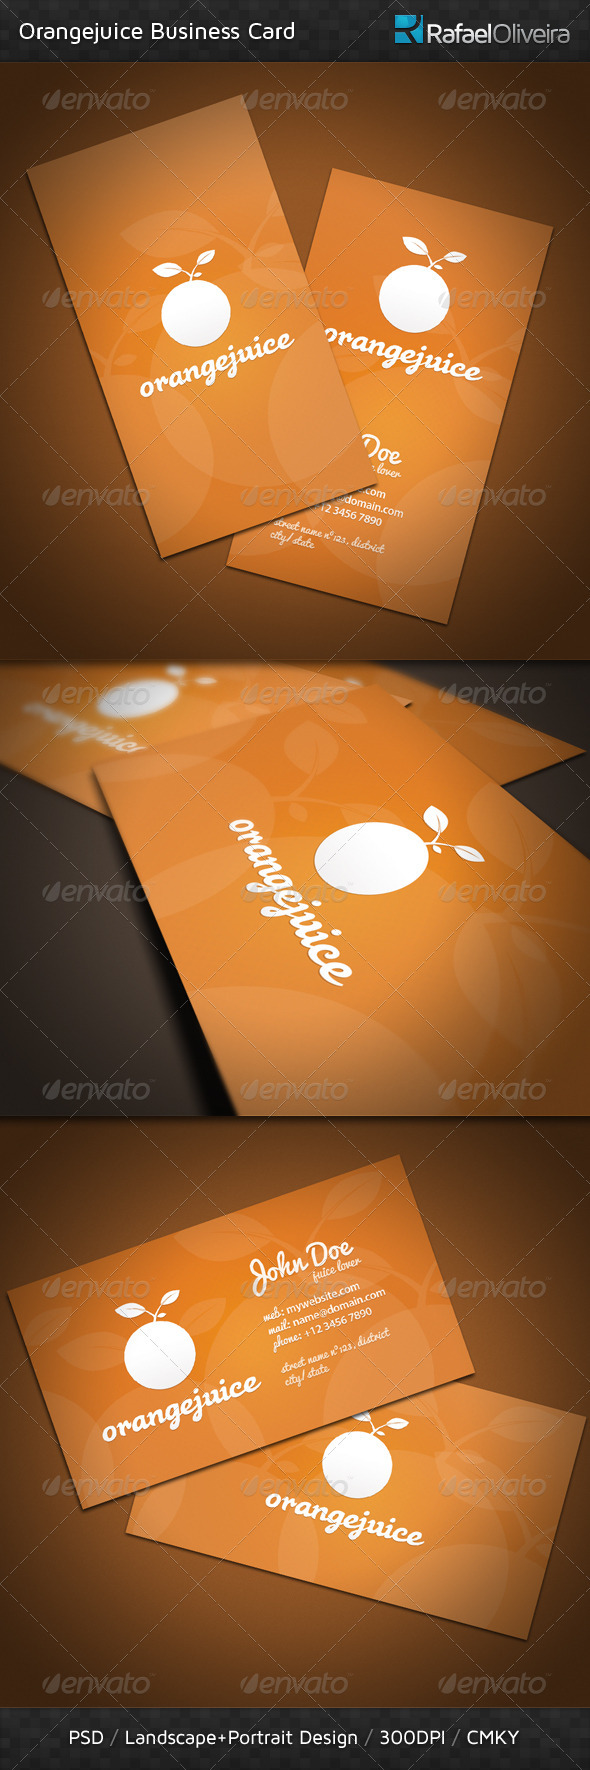 Orangejuice Business Card - Corporate Business Cards